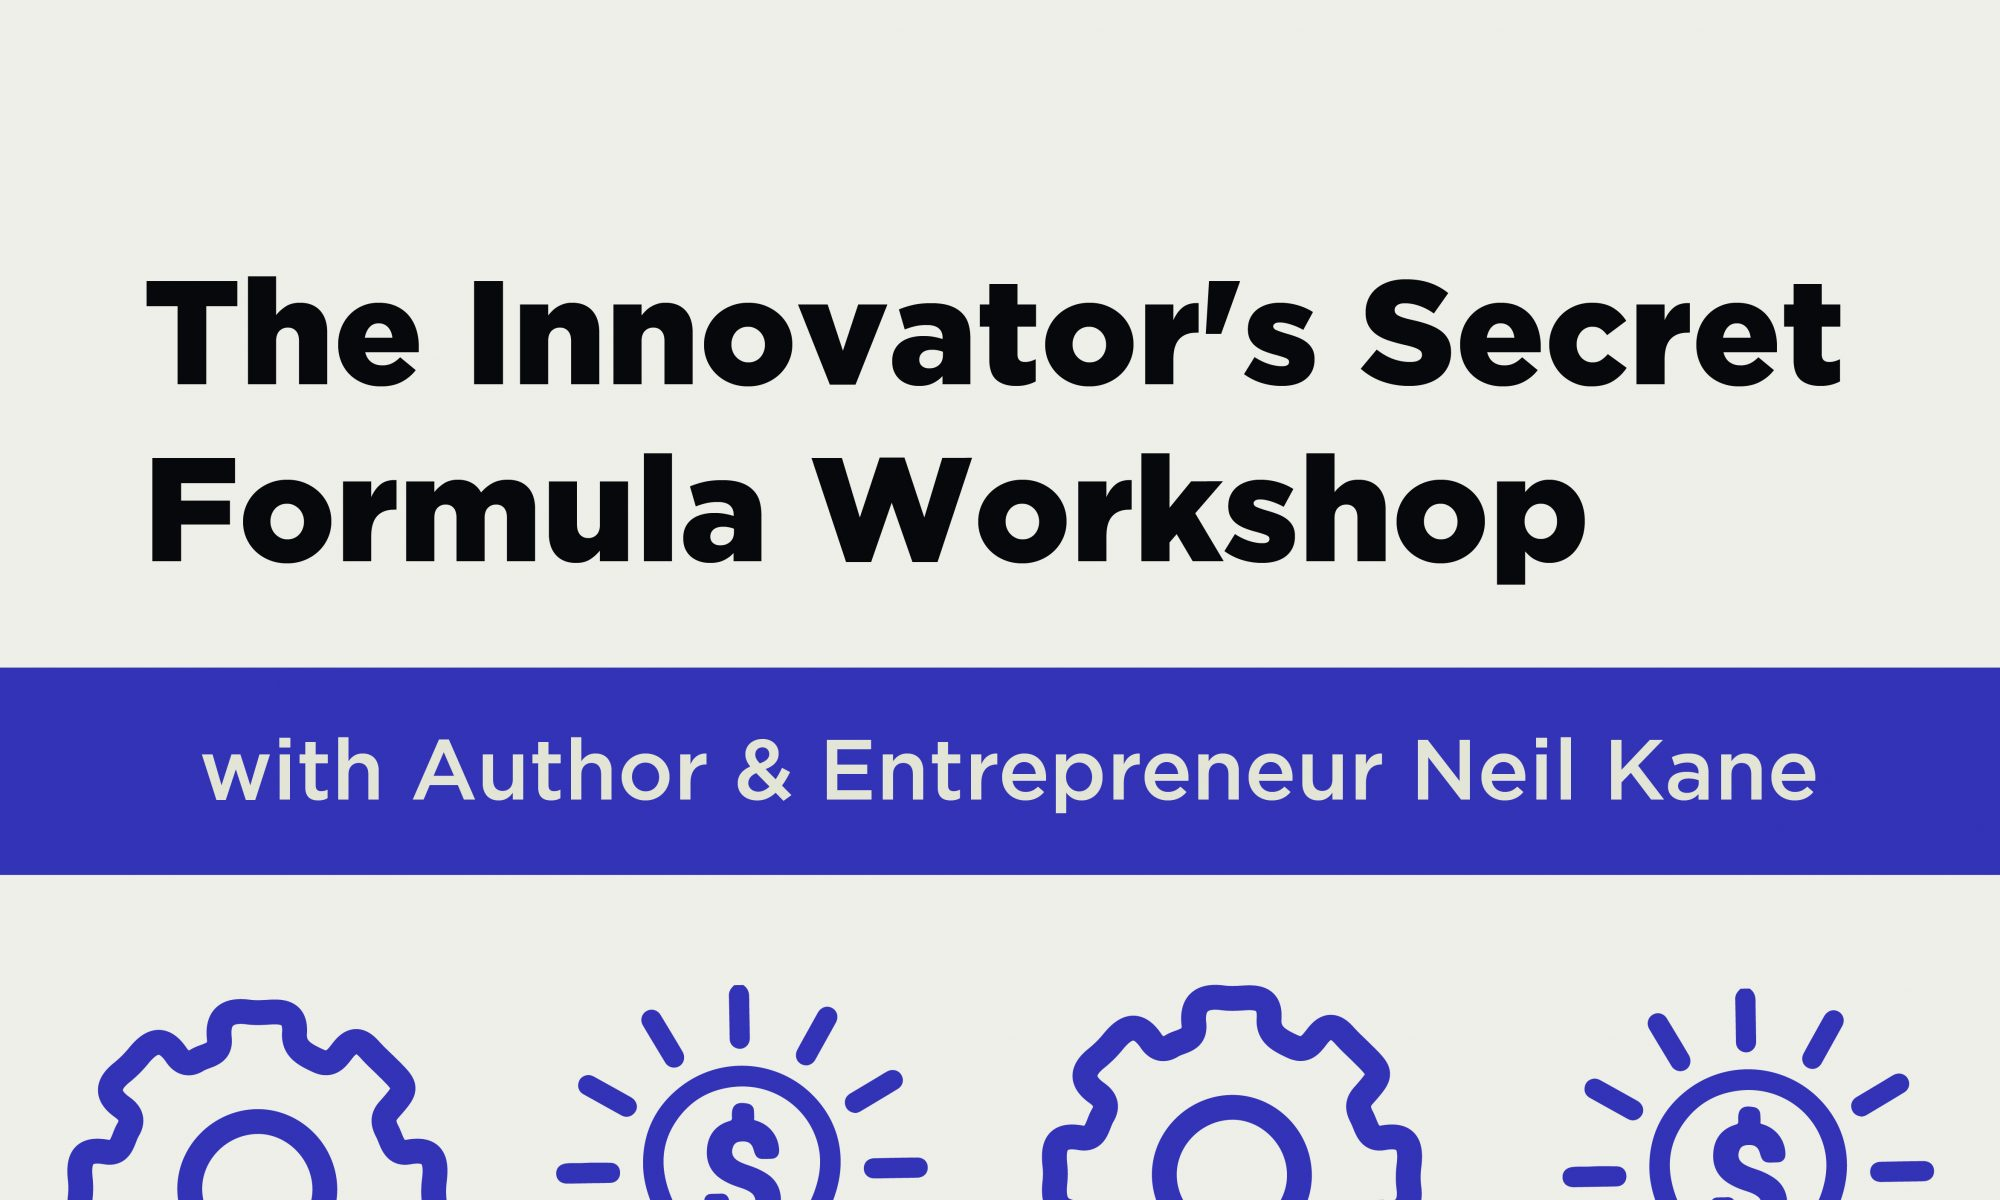 Neil Kane: The Innovator's Secret Formula Workshop